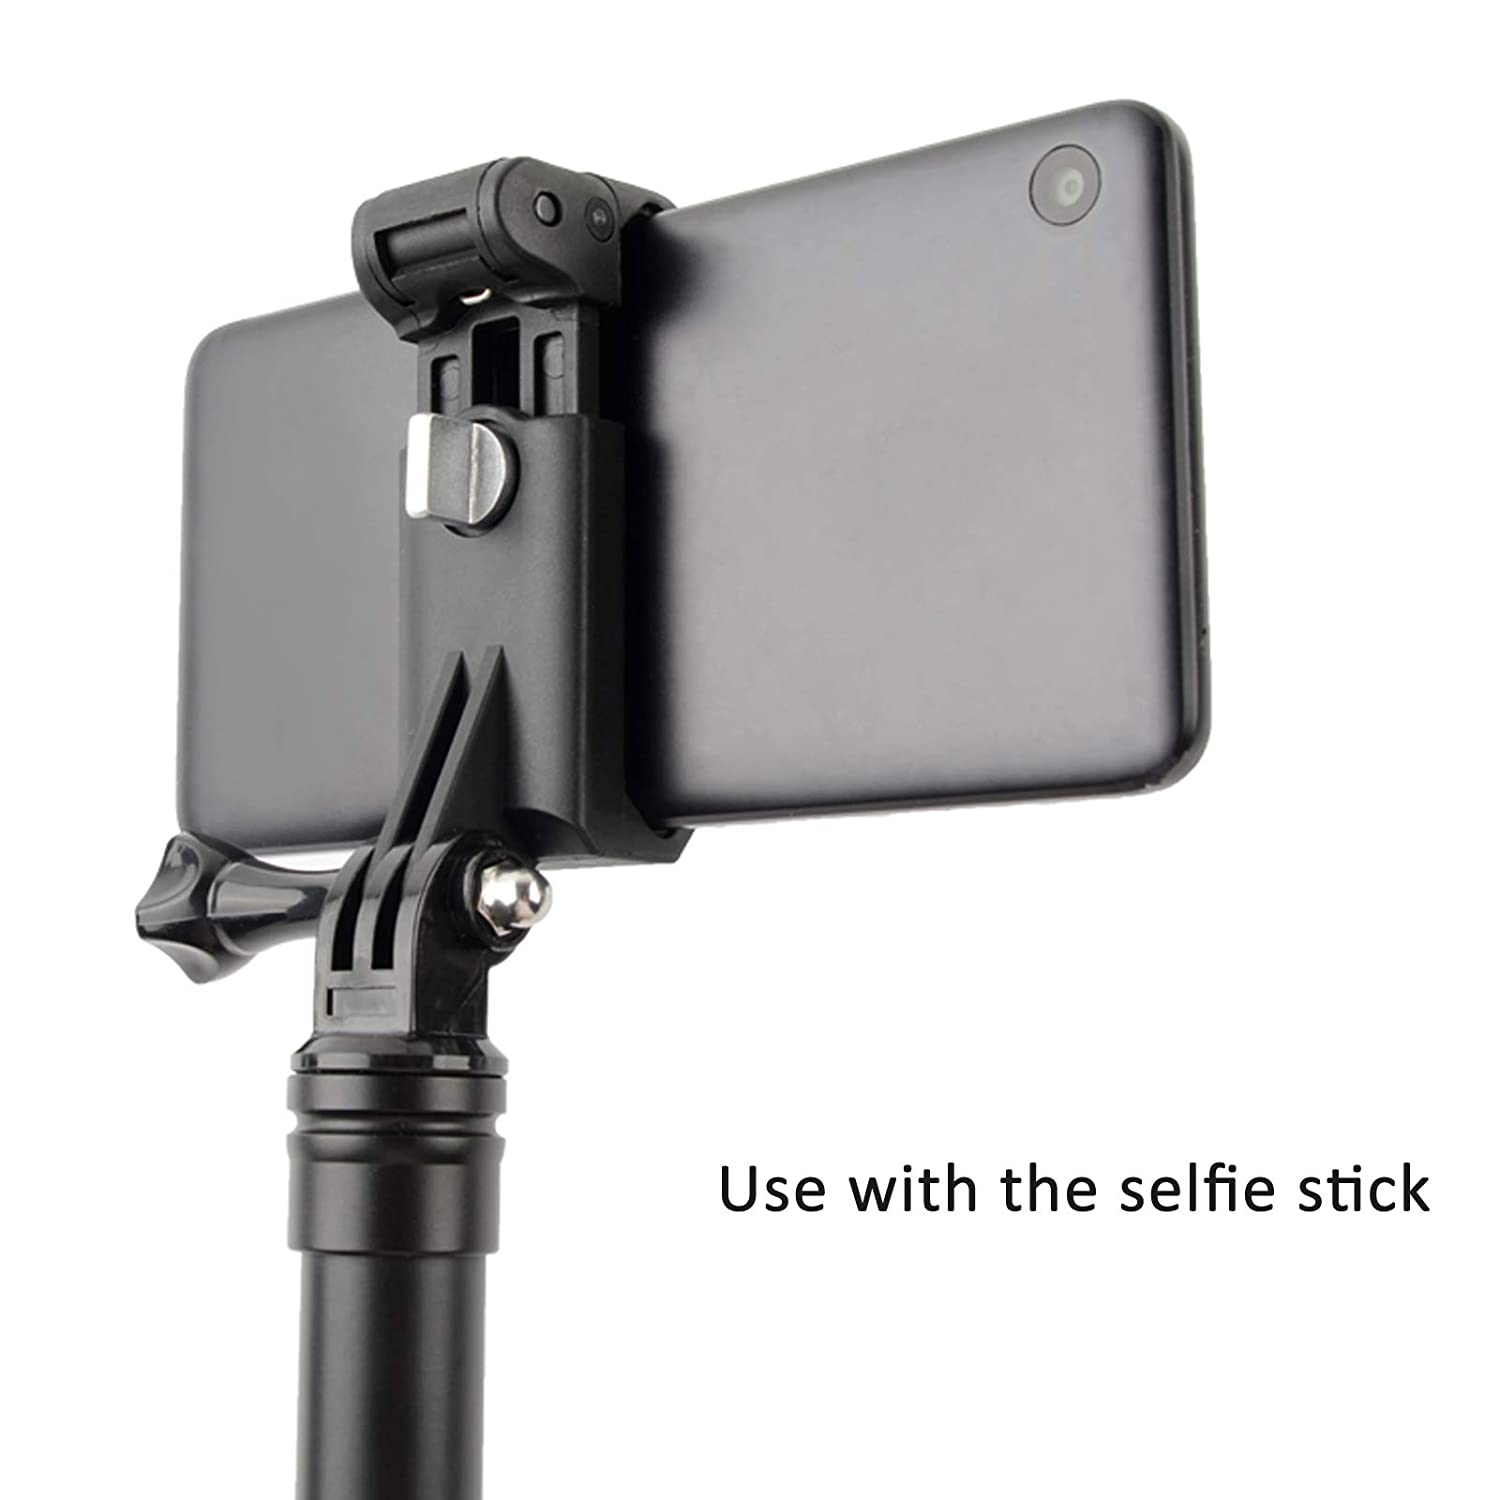 Huawei More Mobile Phones Samsung S10 S9 S8 S7 S6 SHOOT Phone Clip for Selfie Stick Monopod Adjustable Clamp Suitable for Width 51-84mm for iPhone Xs XR 8 X 8P 7 7P 6S 6P 6